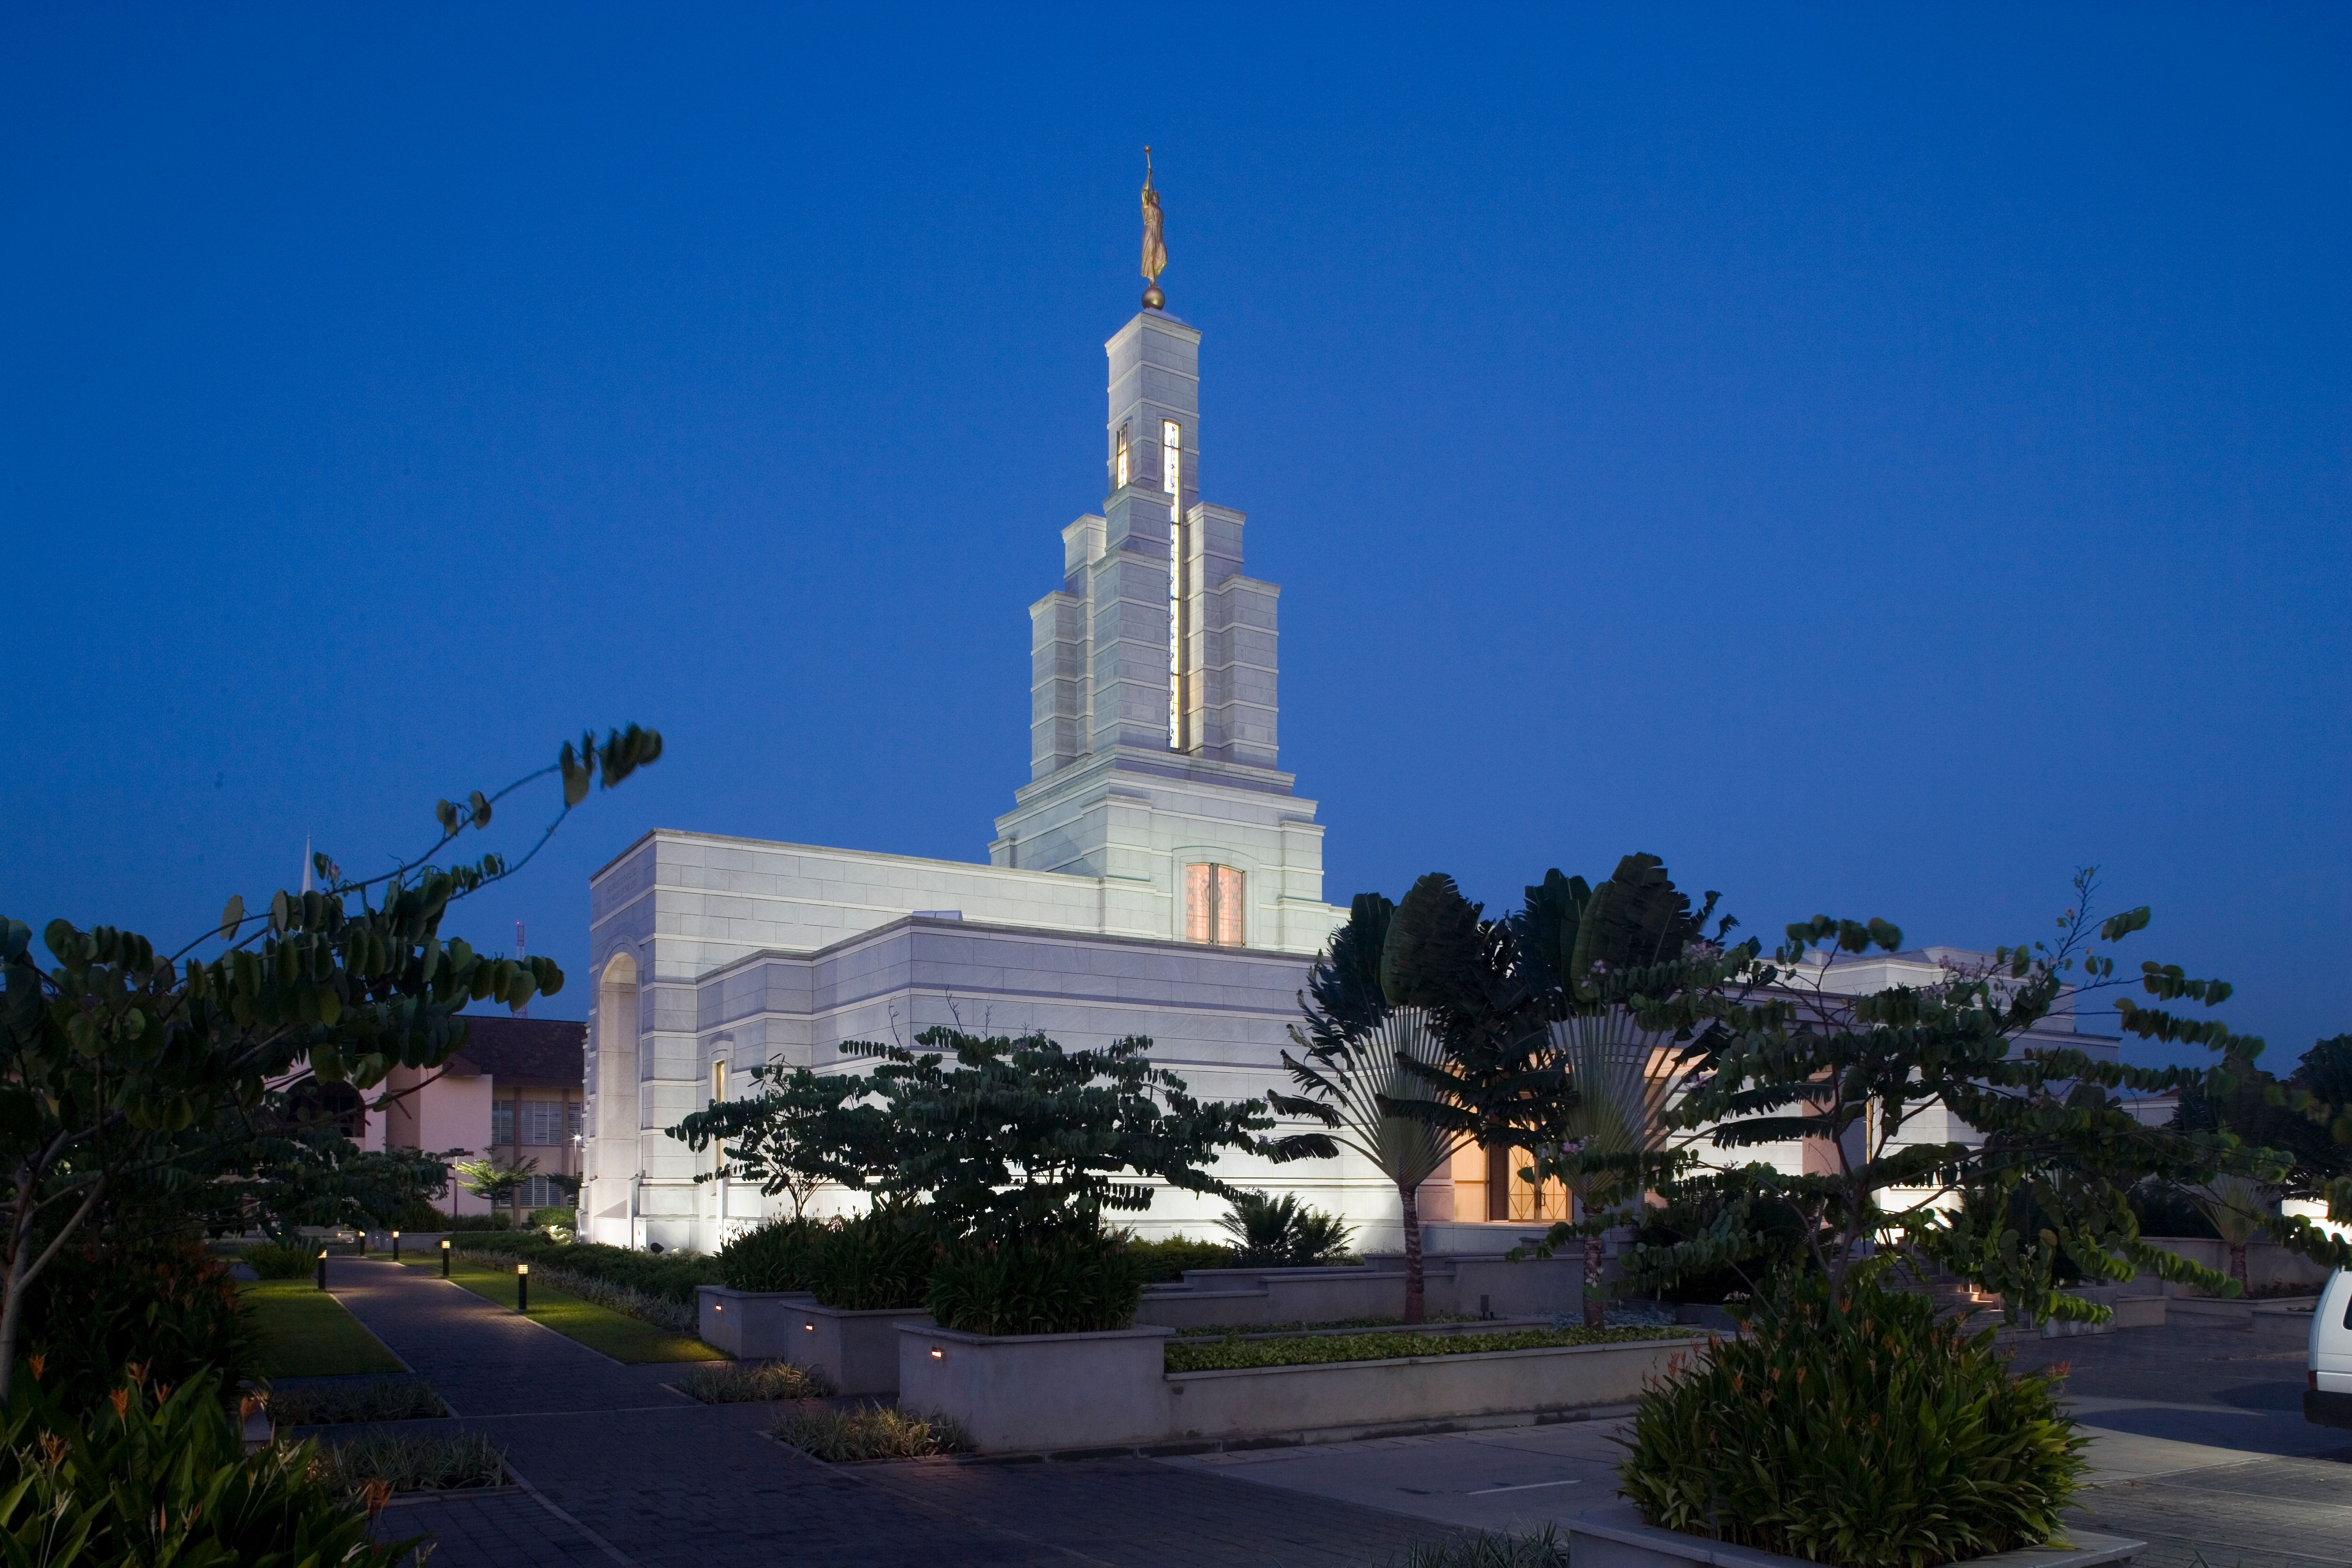 The Accra Ghana Temple and grounds are lit up at night.